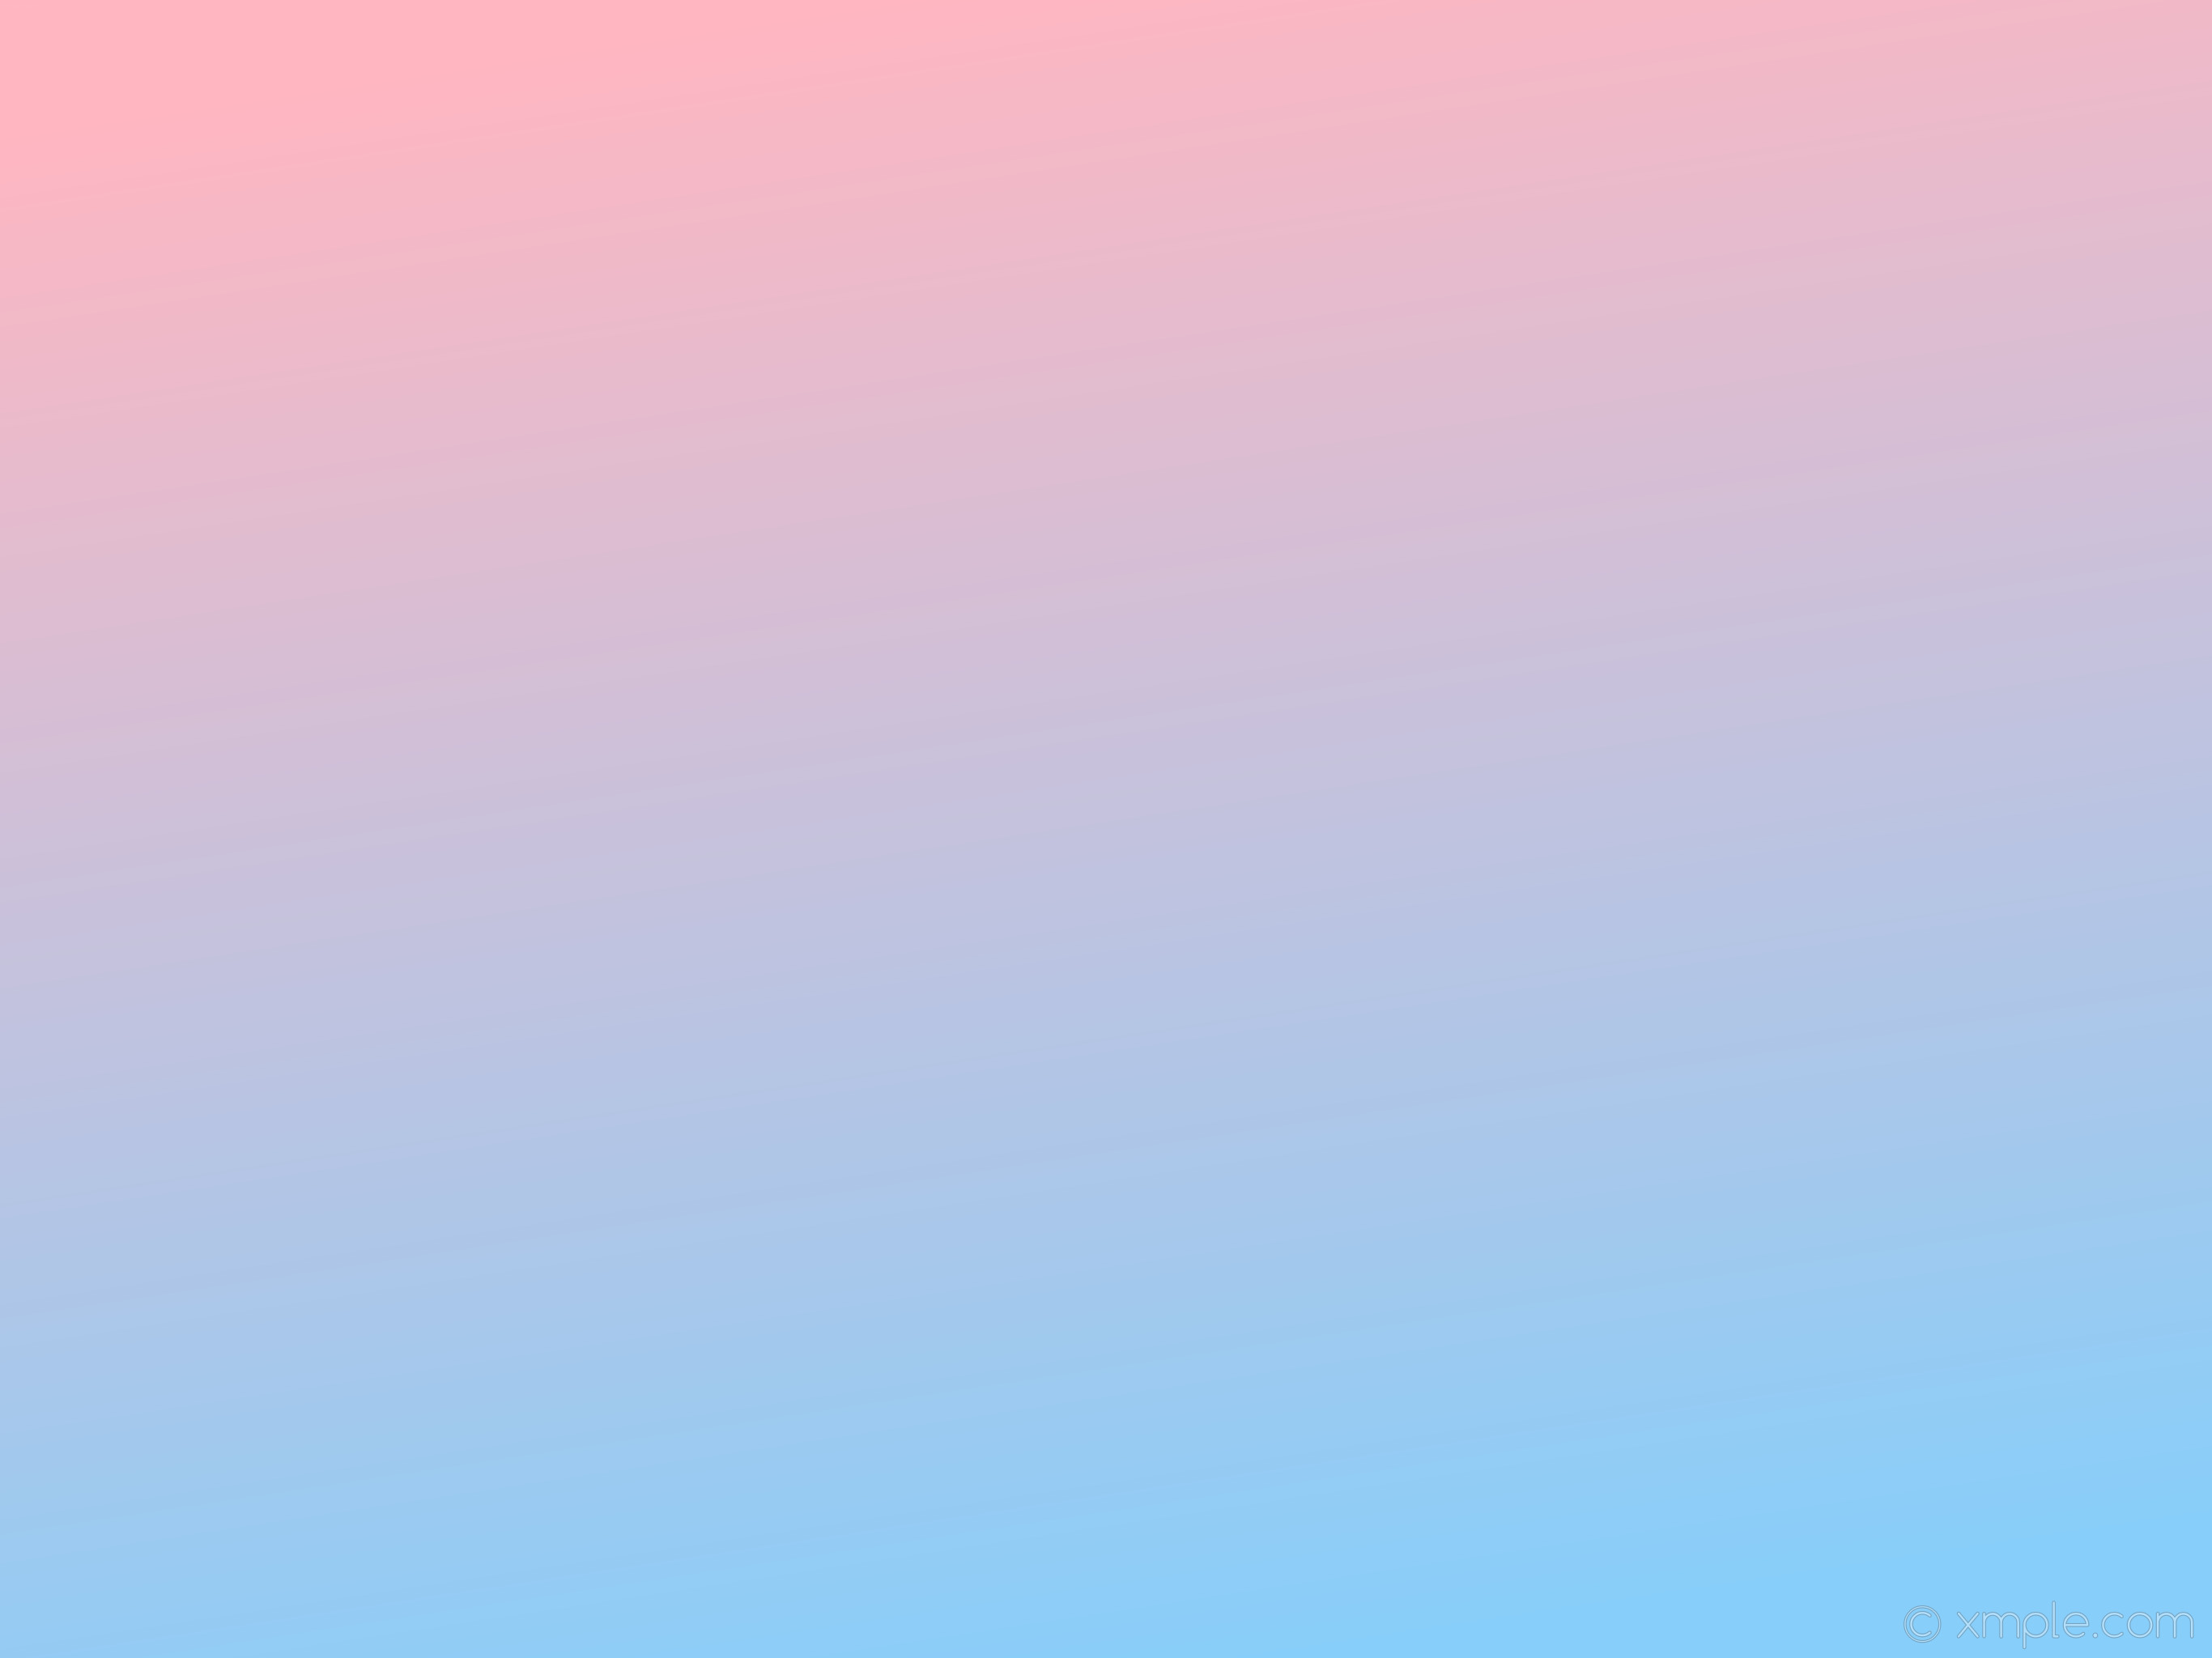 Light Blue And Pink Wallpaper (71+ Images